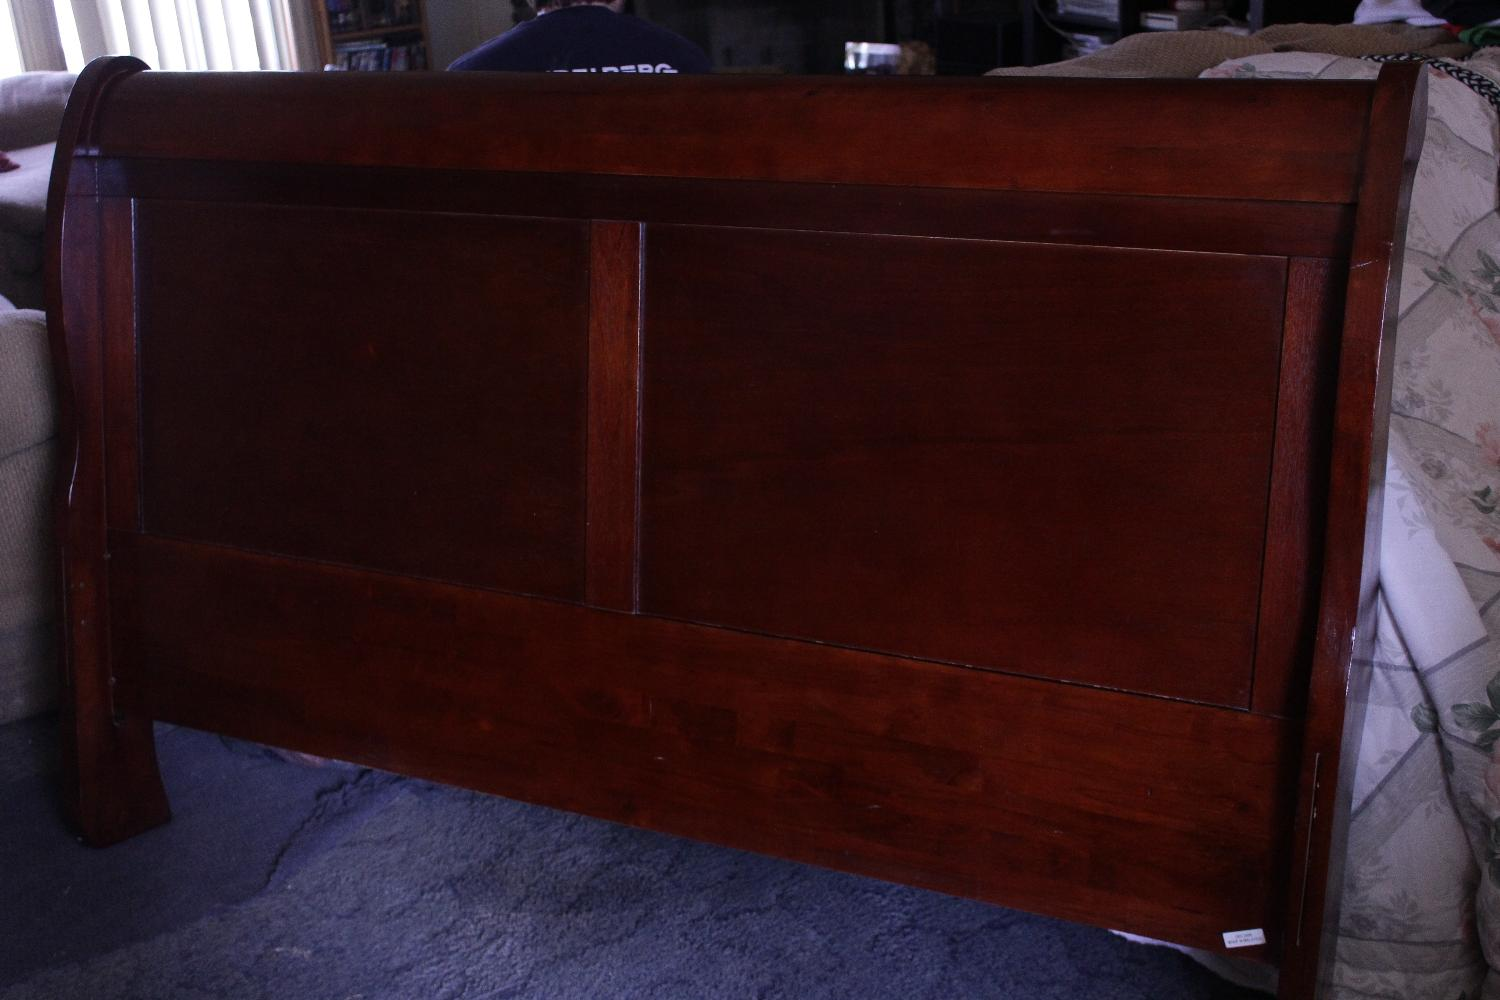 Very Impressive portraiture of Best Cherry Wood Sleigh Bed Queen ( Price Reduced) Need To Sell!! for  with #281013 color and 1500x1000 pixels